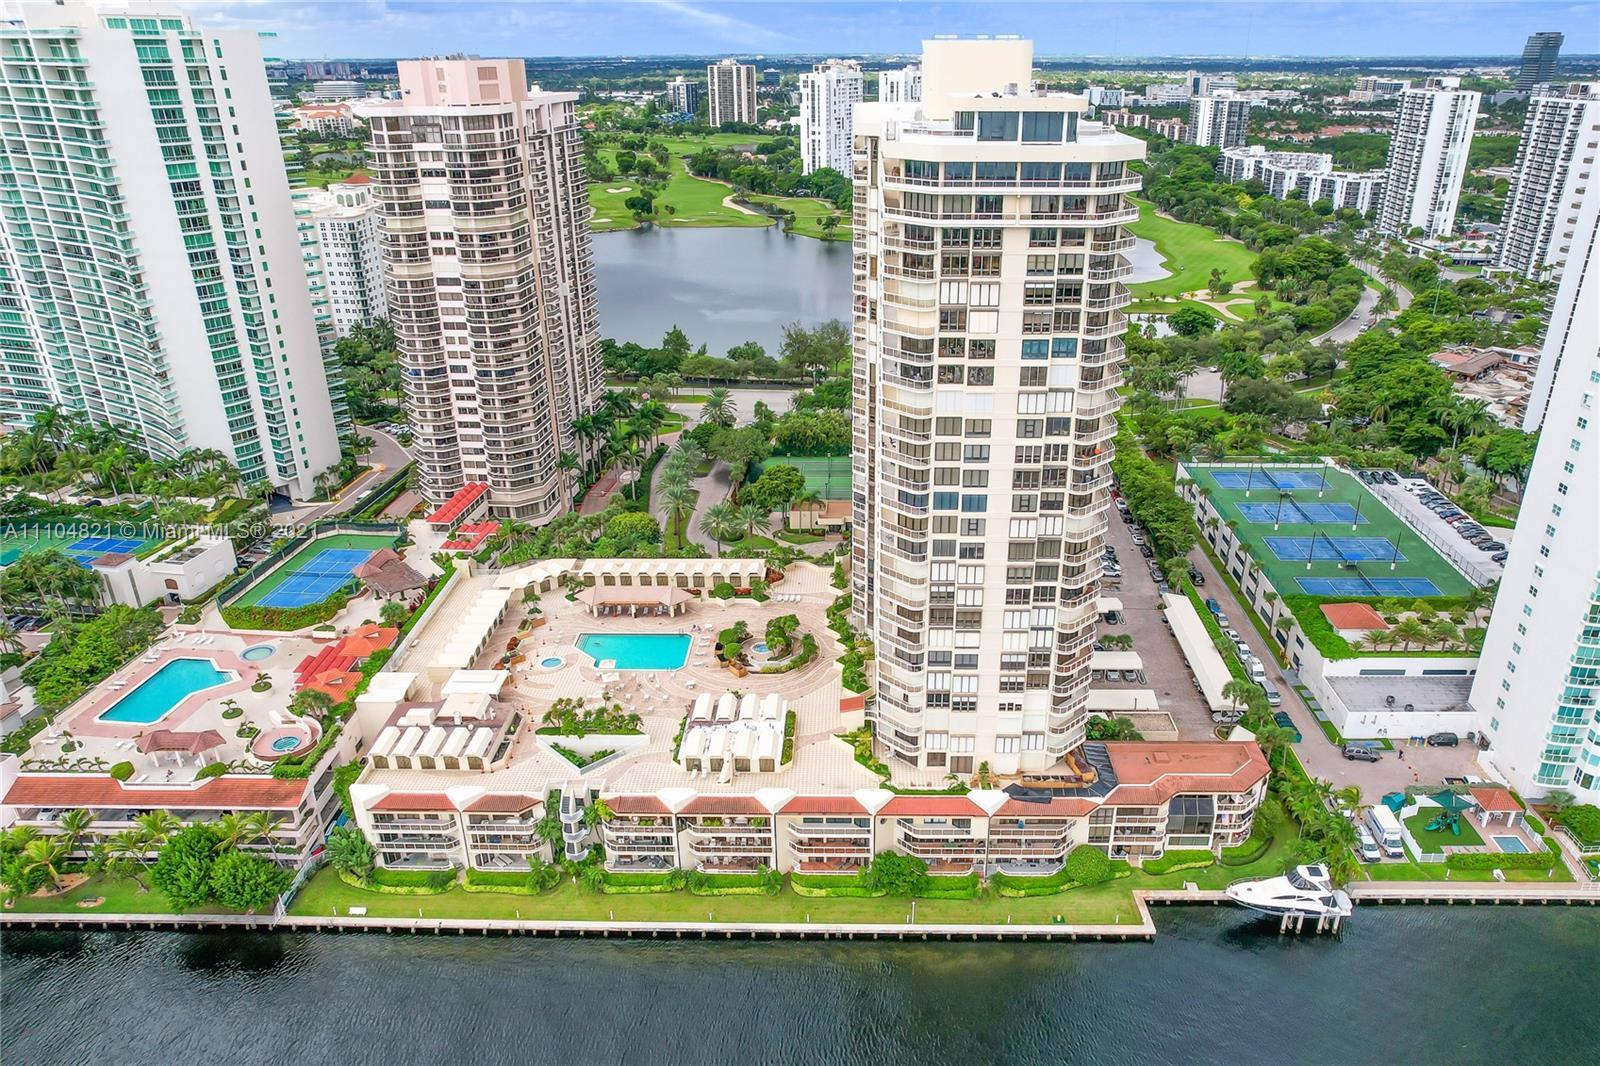 Live a relaxing life, with breathtaking views of the ocean, intercoastal, and, Golf course. Enjoy th